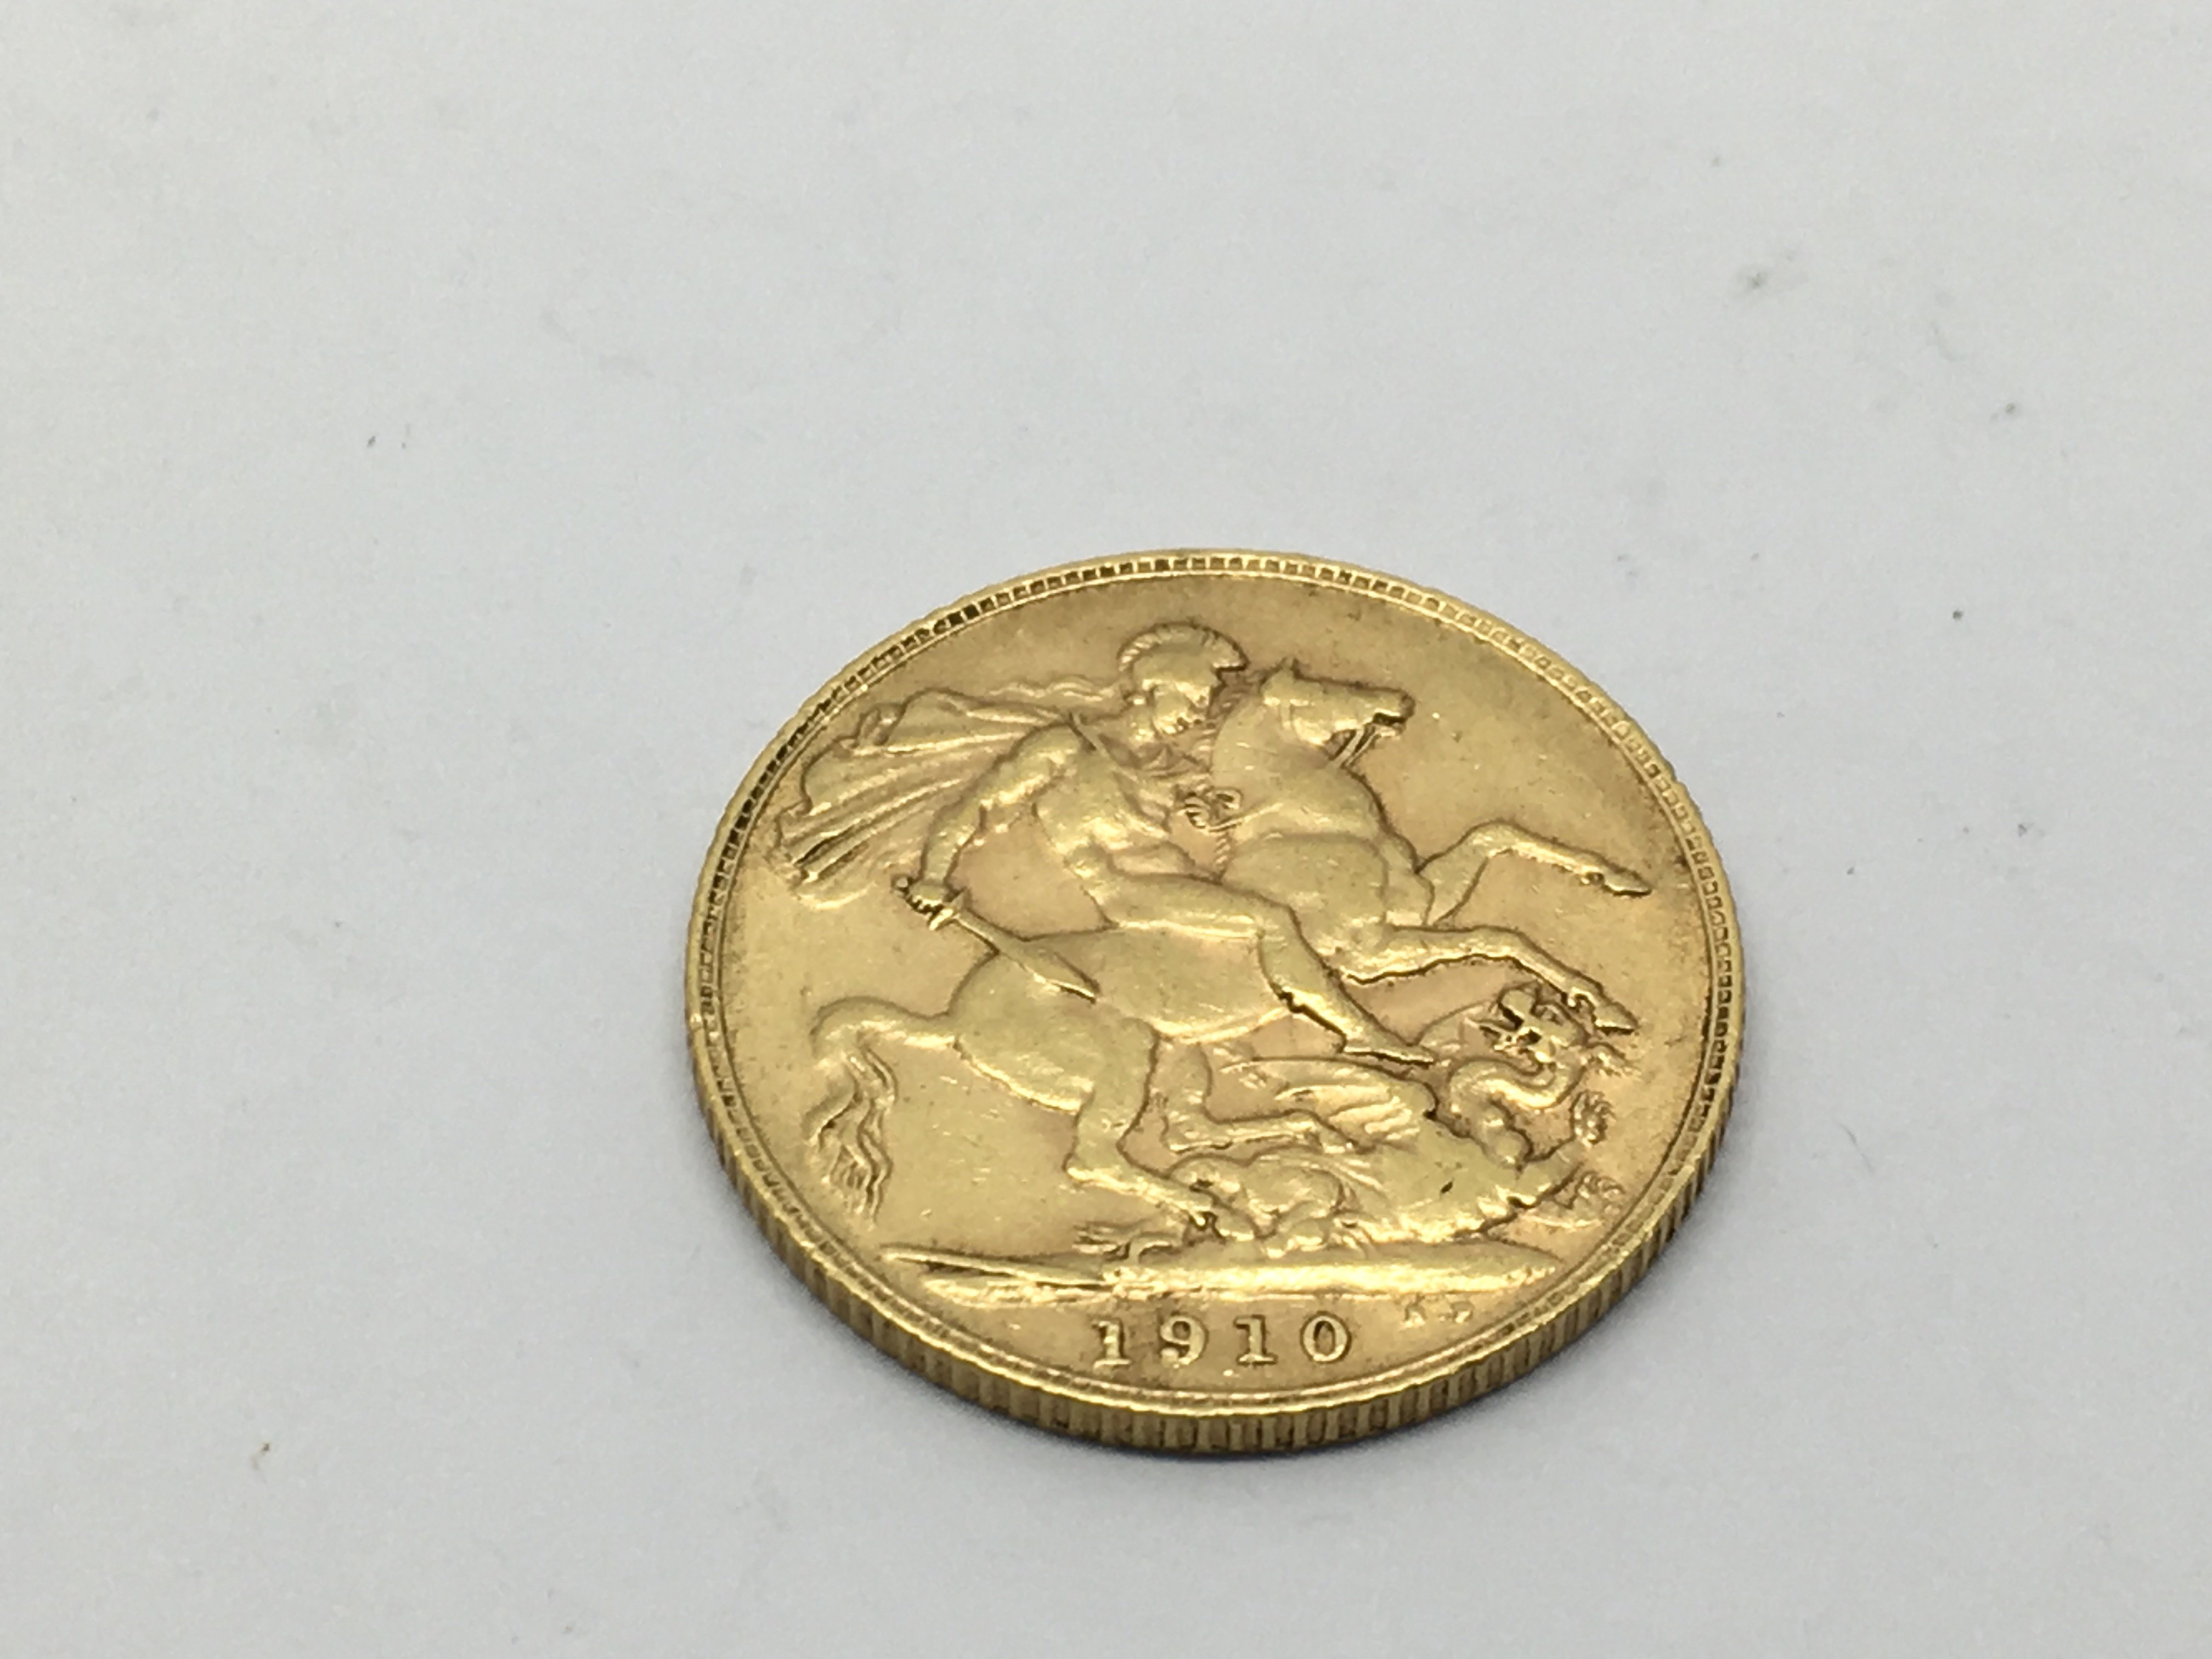 A 1910 gold sovereign, approx 8g.